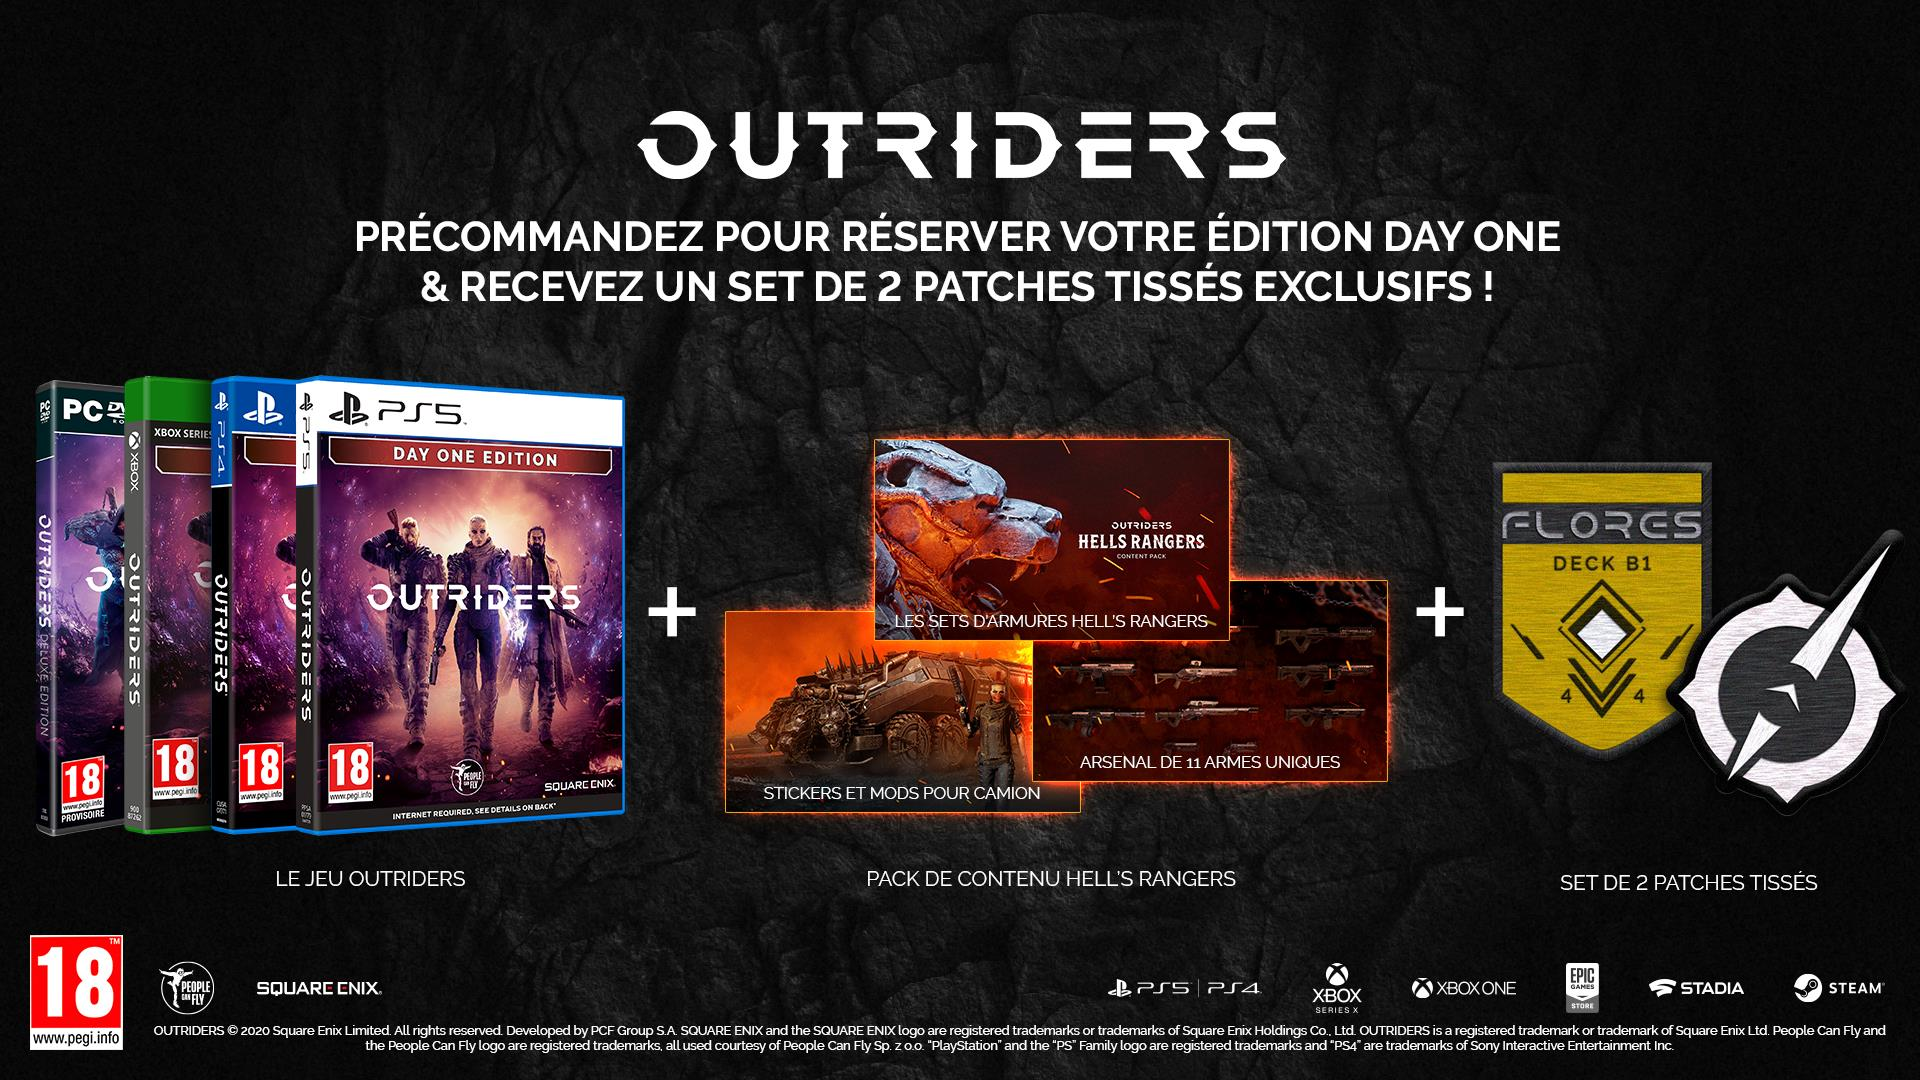 Square Enix - Playstation 4 : Outriders Day One Edition